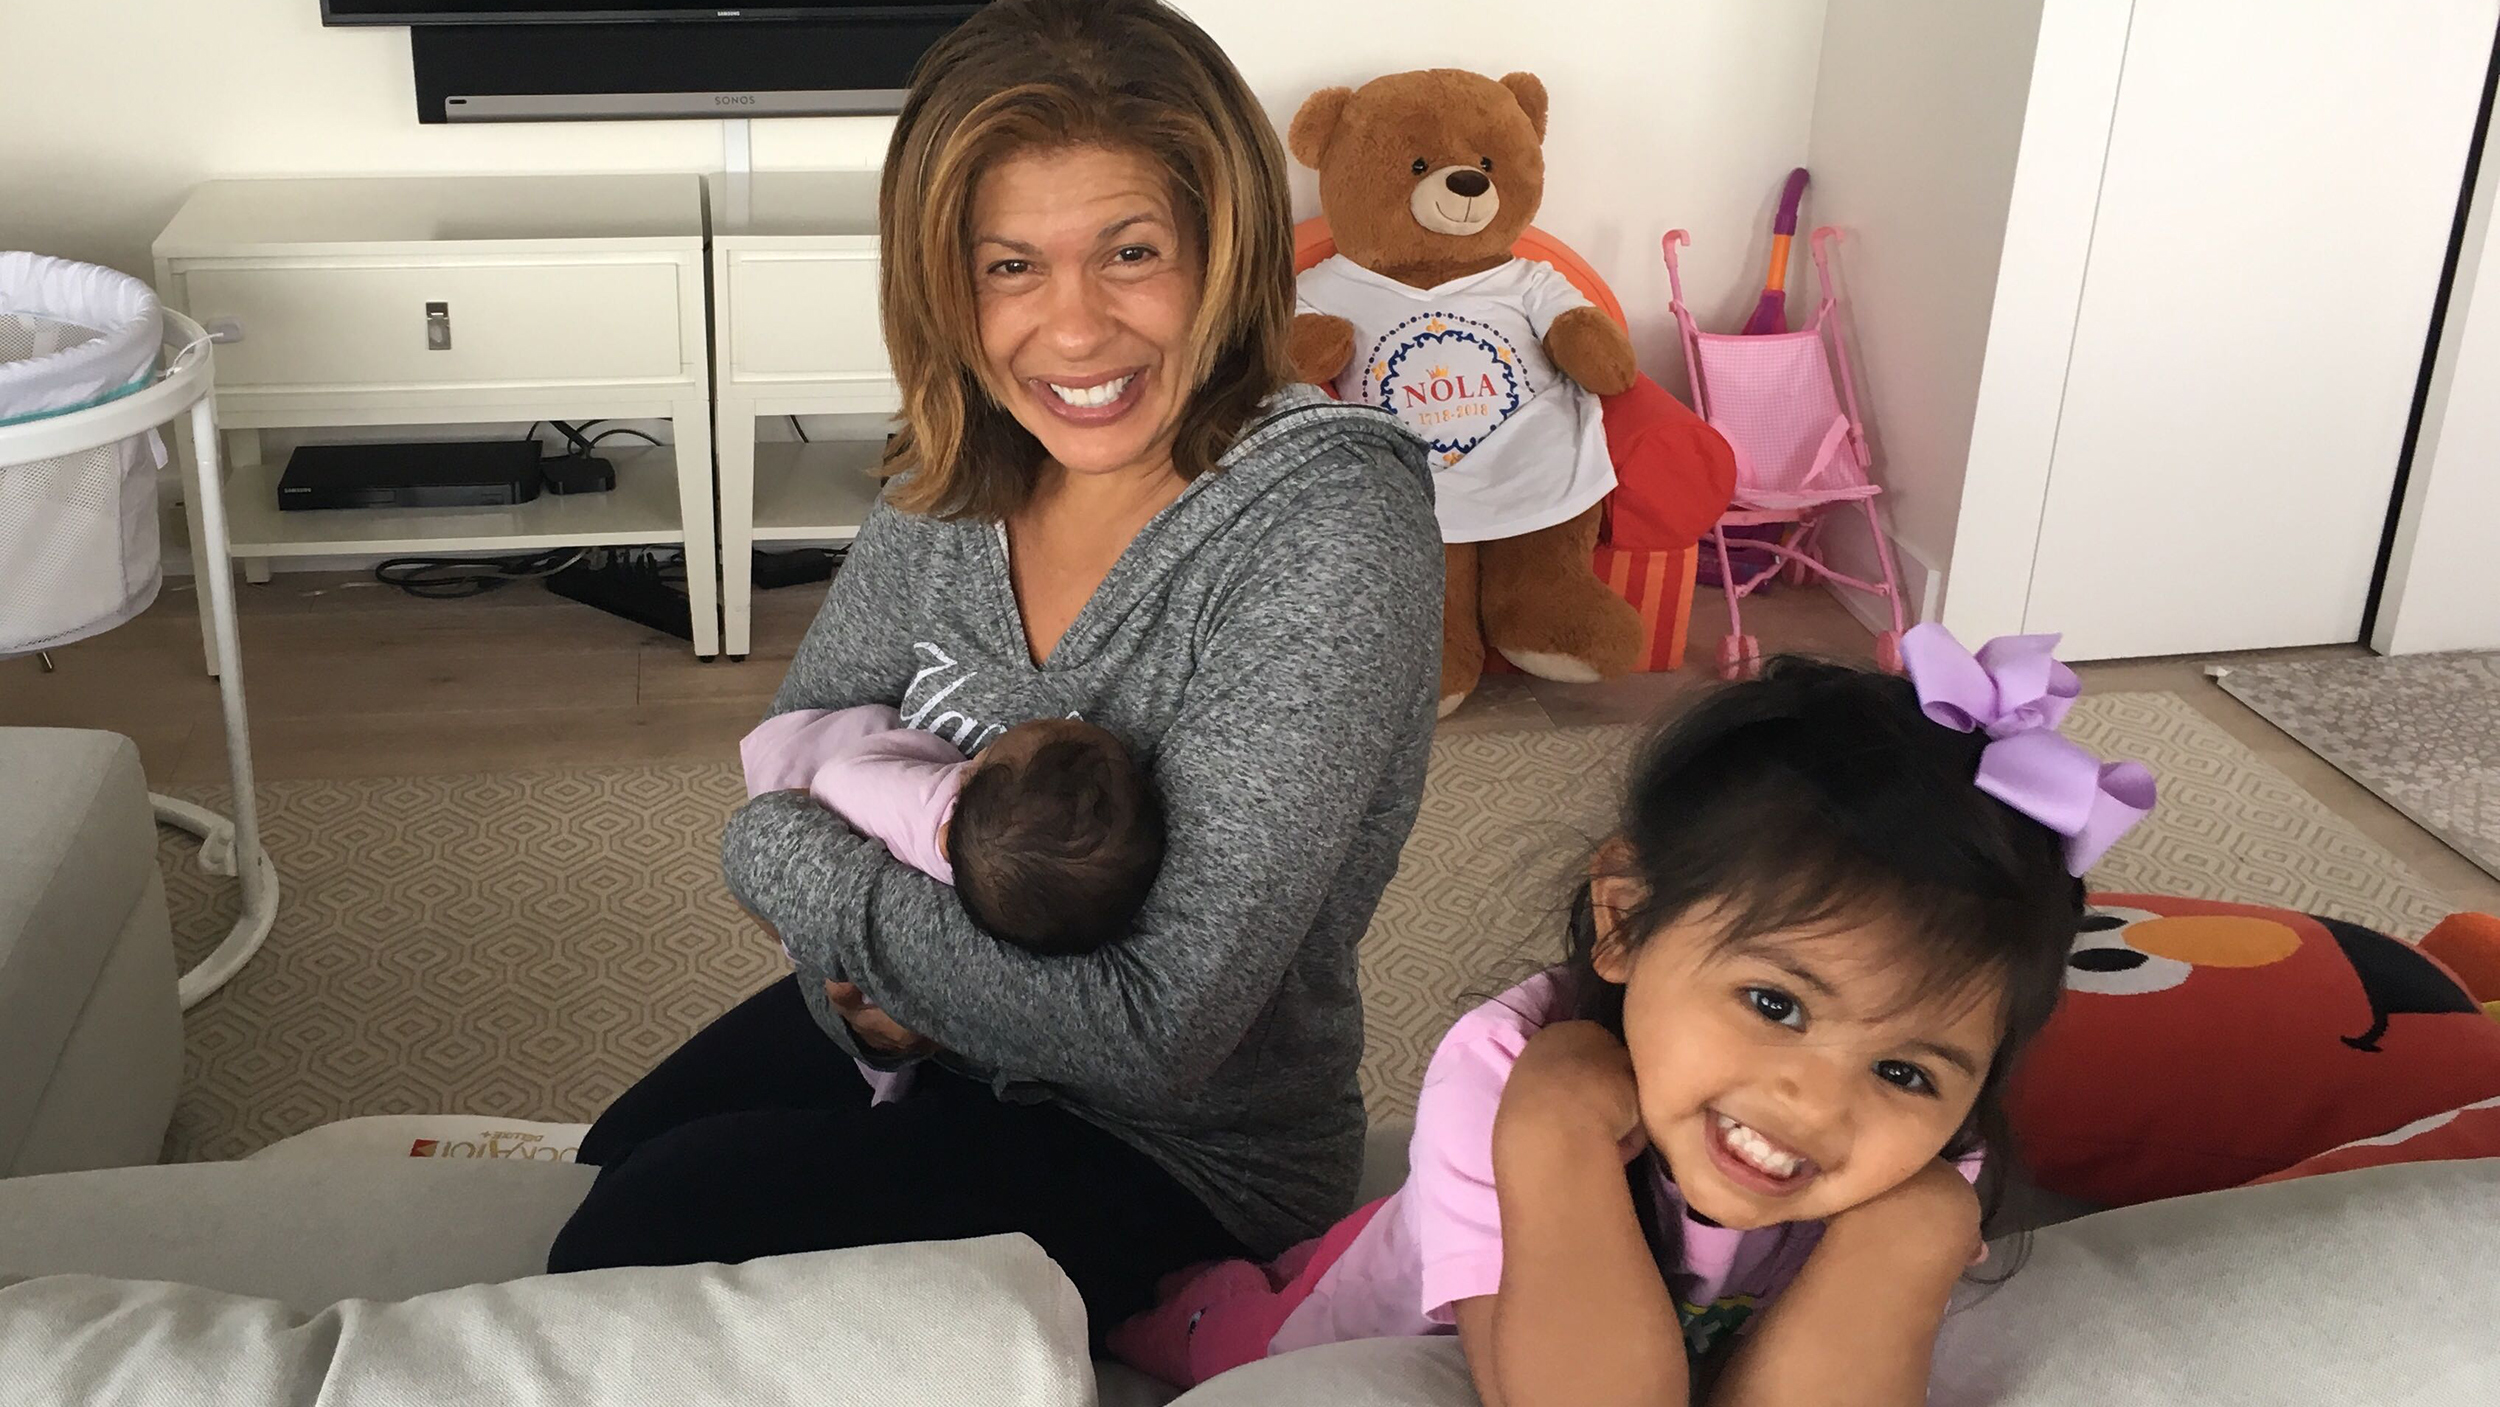 Hoda Kotb announces she has adopted another baby girl